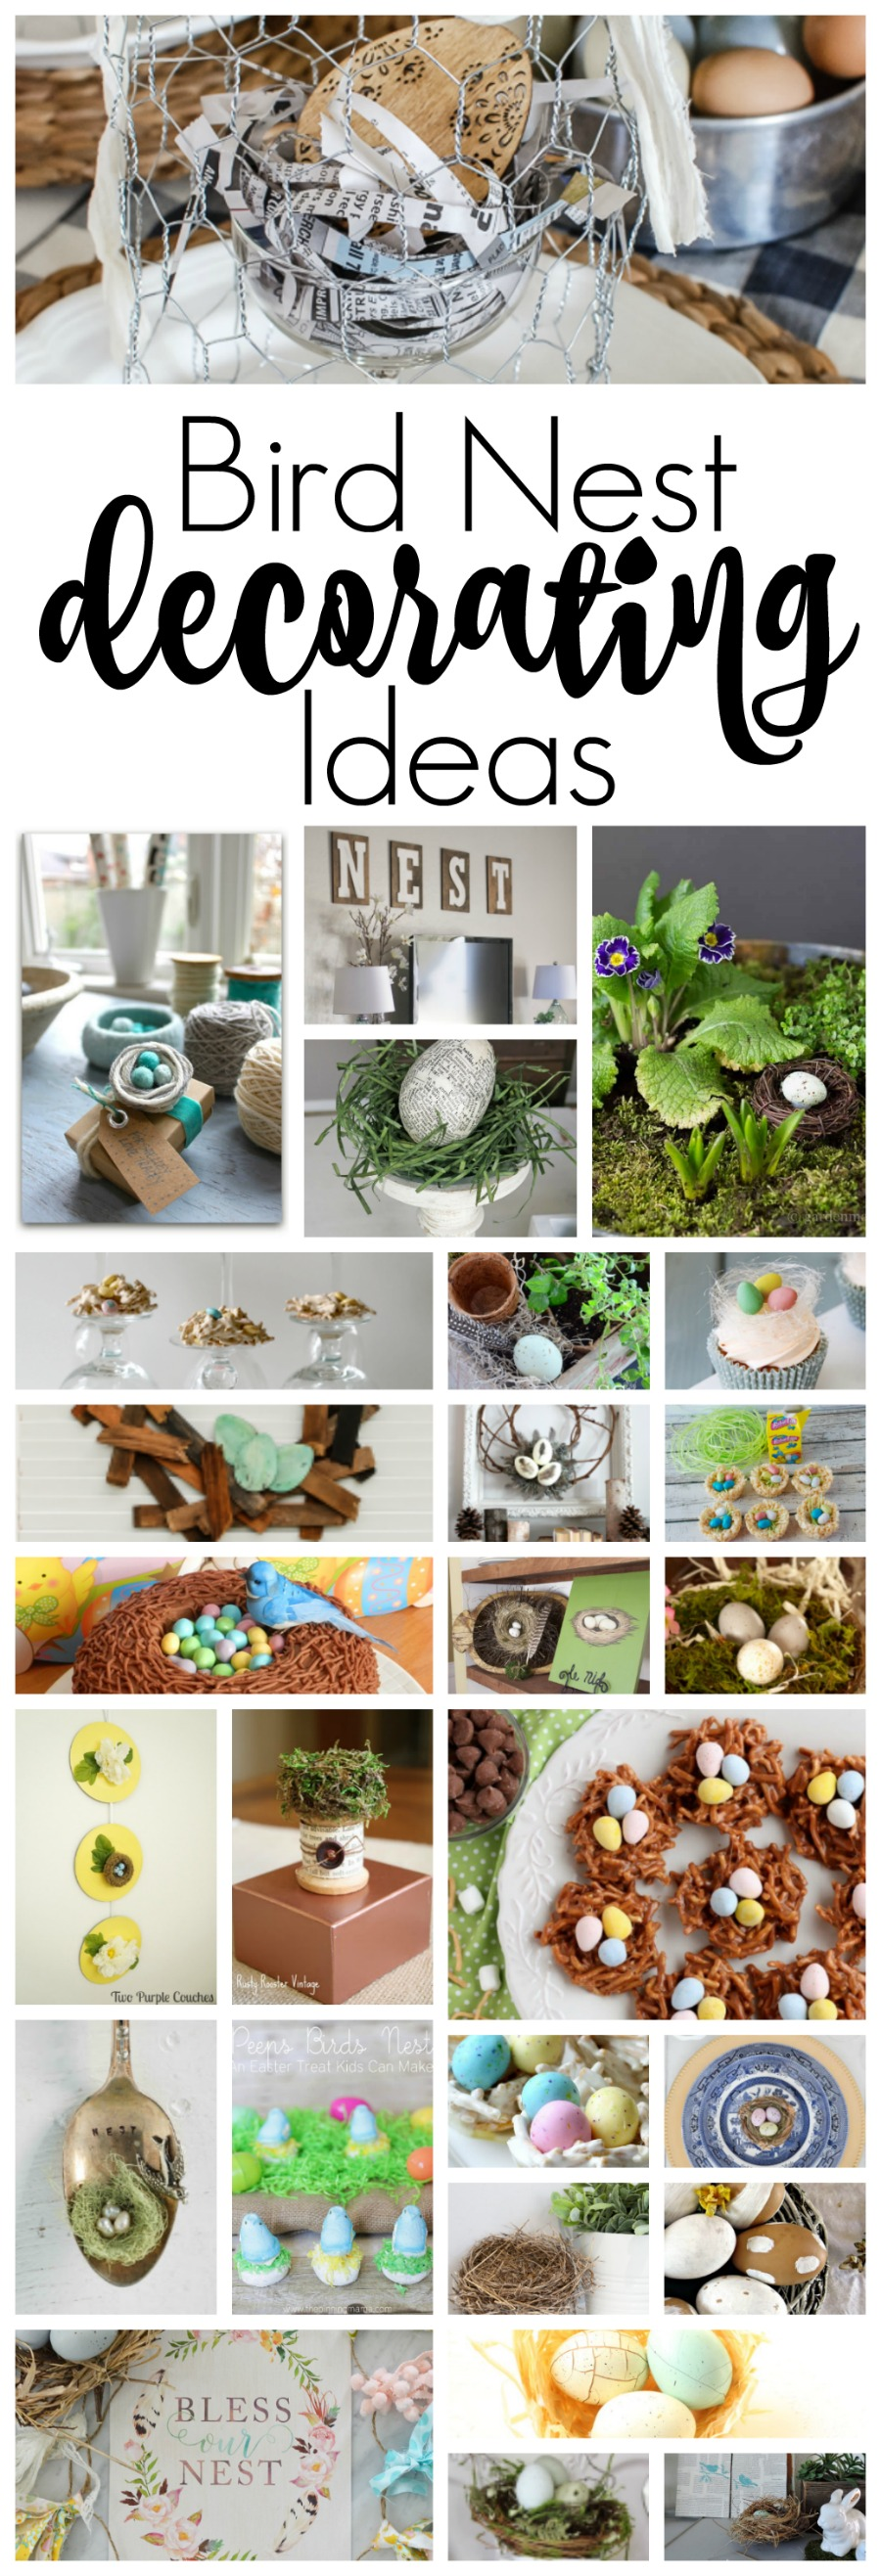 Over 25 Bird Nest Decorating Ideas For You To Add